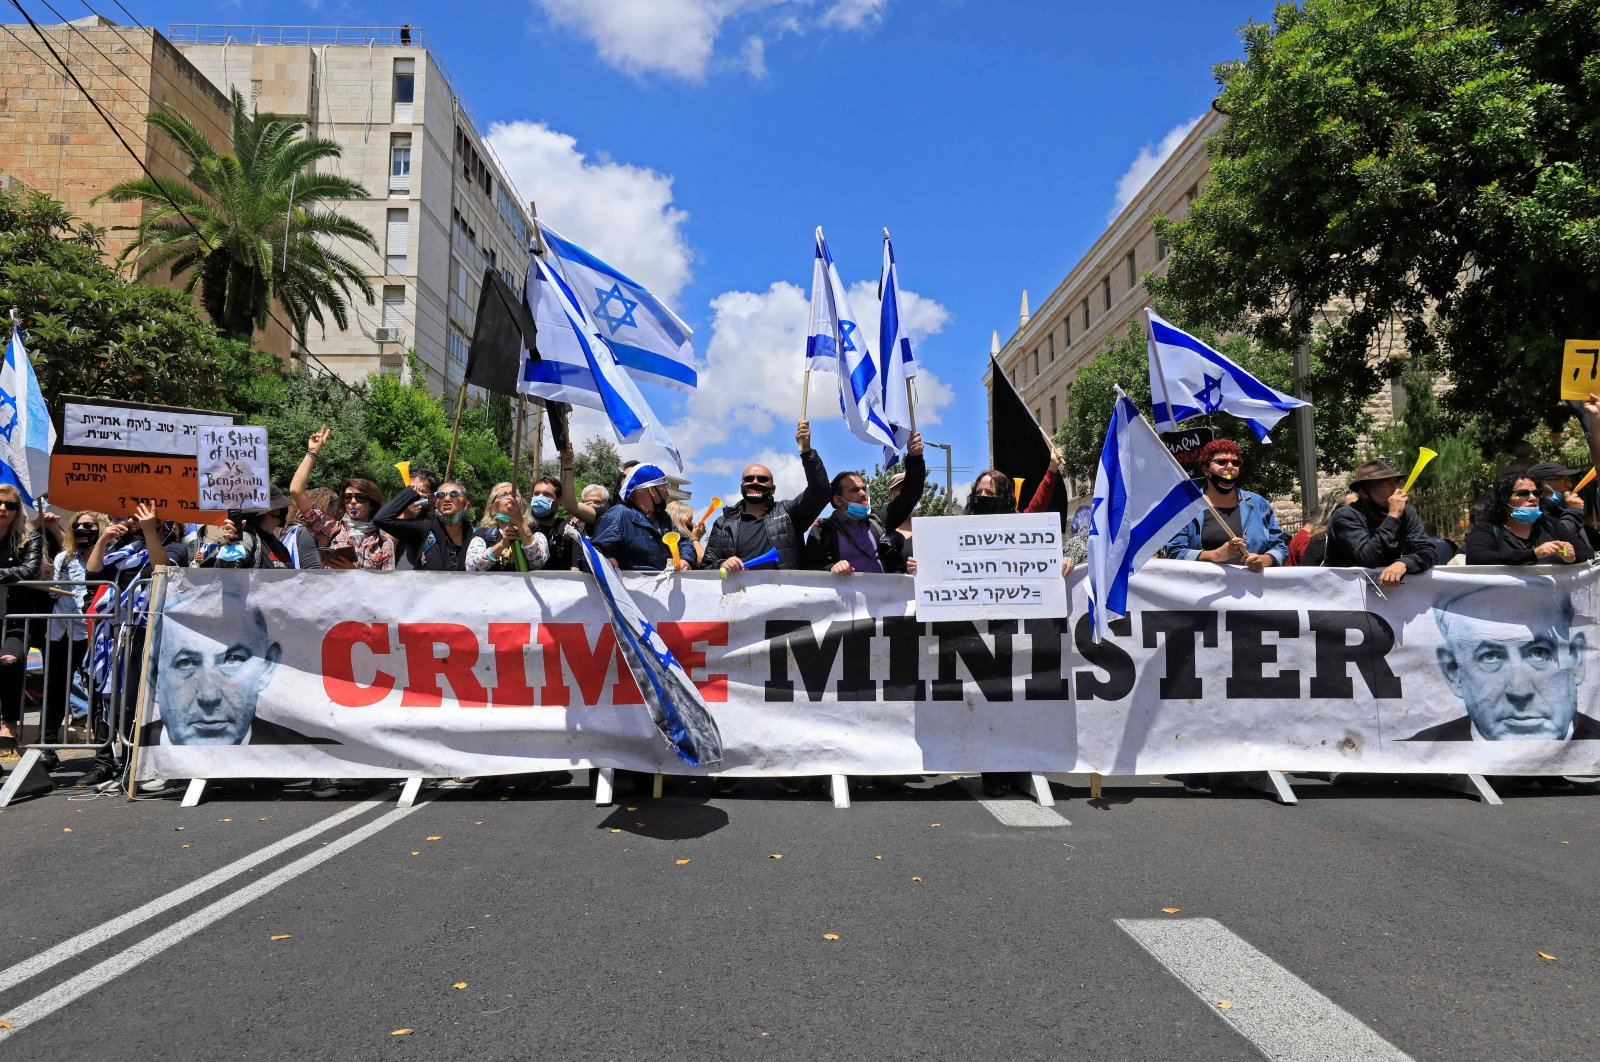 Israeli protesters rally against Prime Minister Benjamin Netanyahu outside his residence, Jerusalem, May 24, 2020. (AFP Photo)